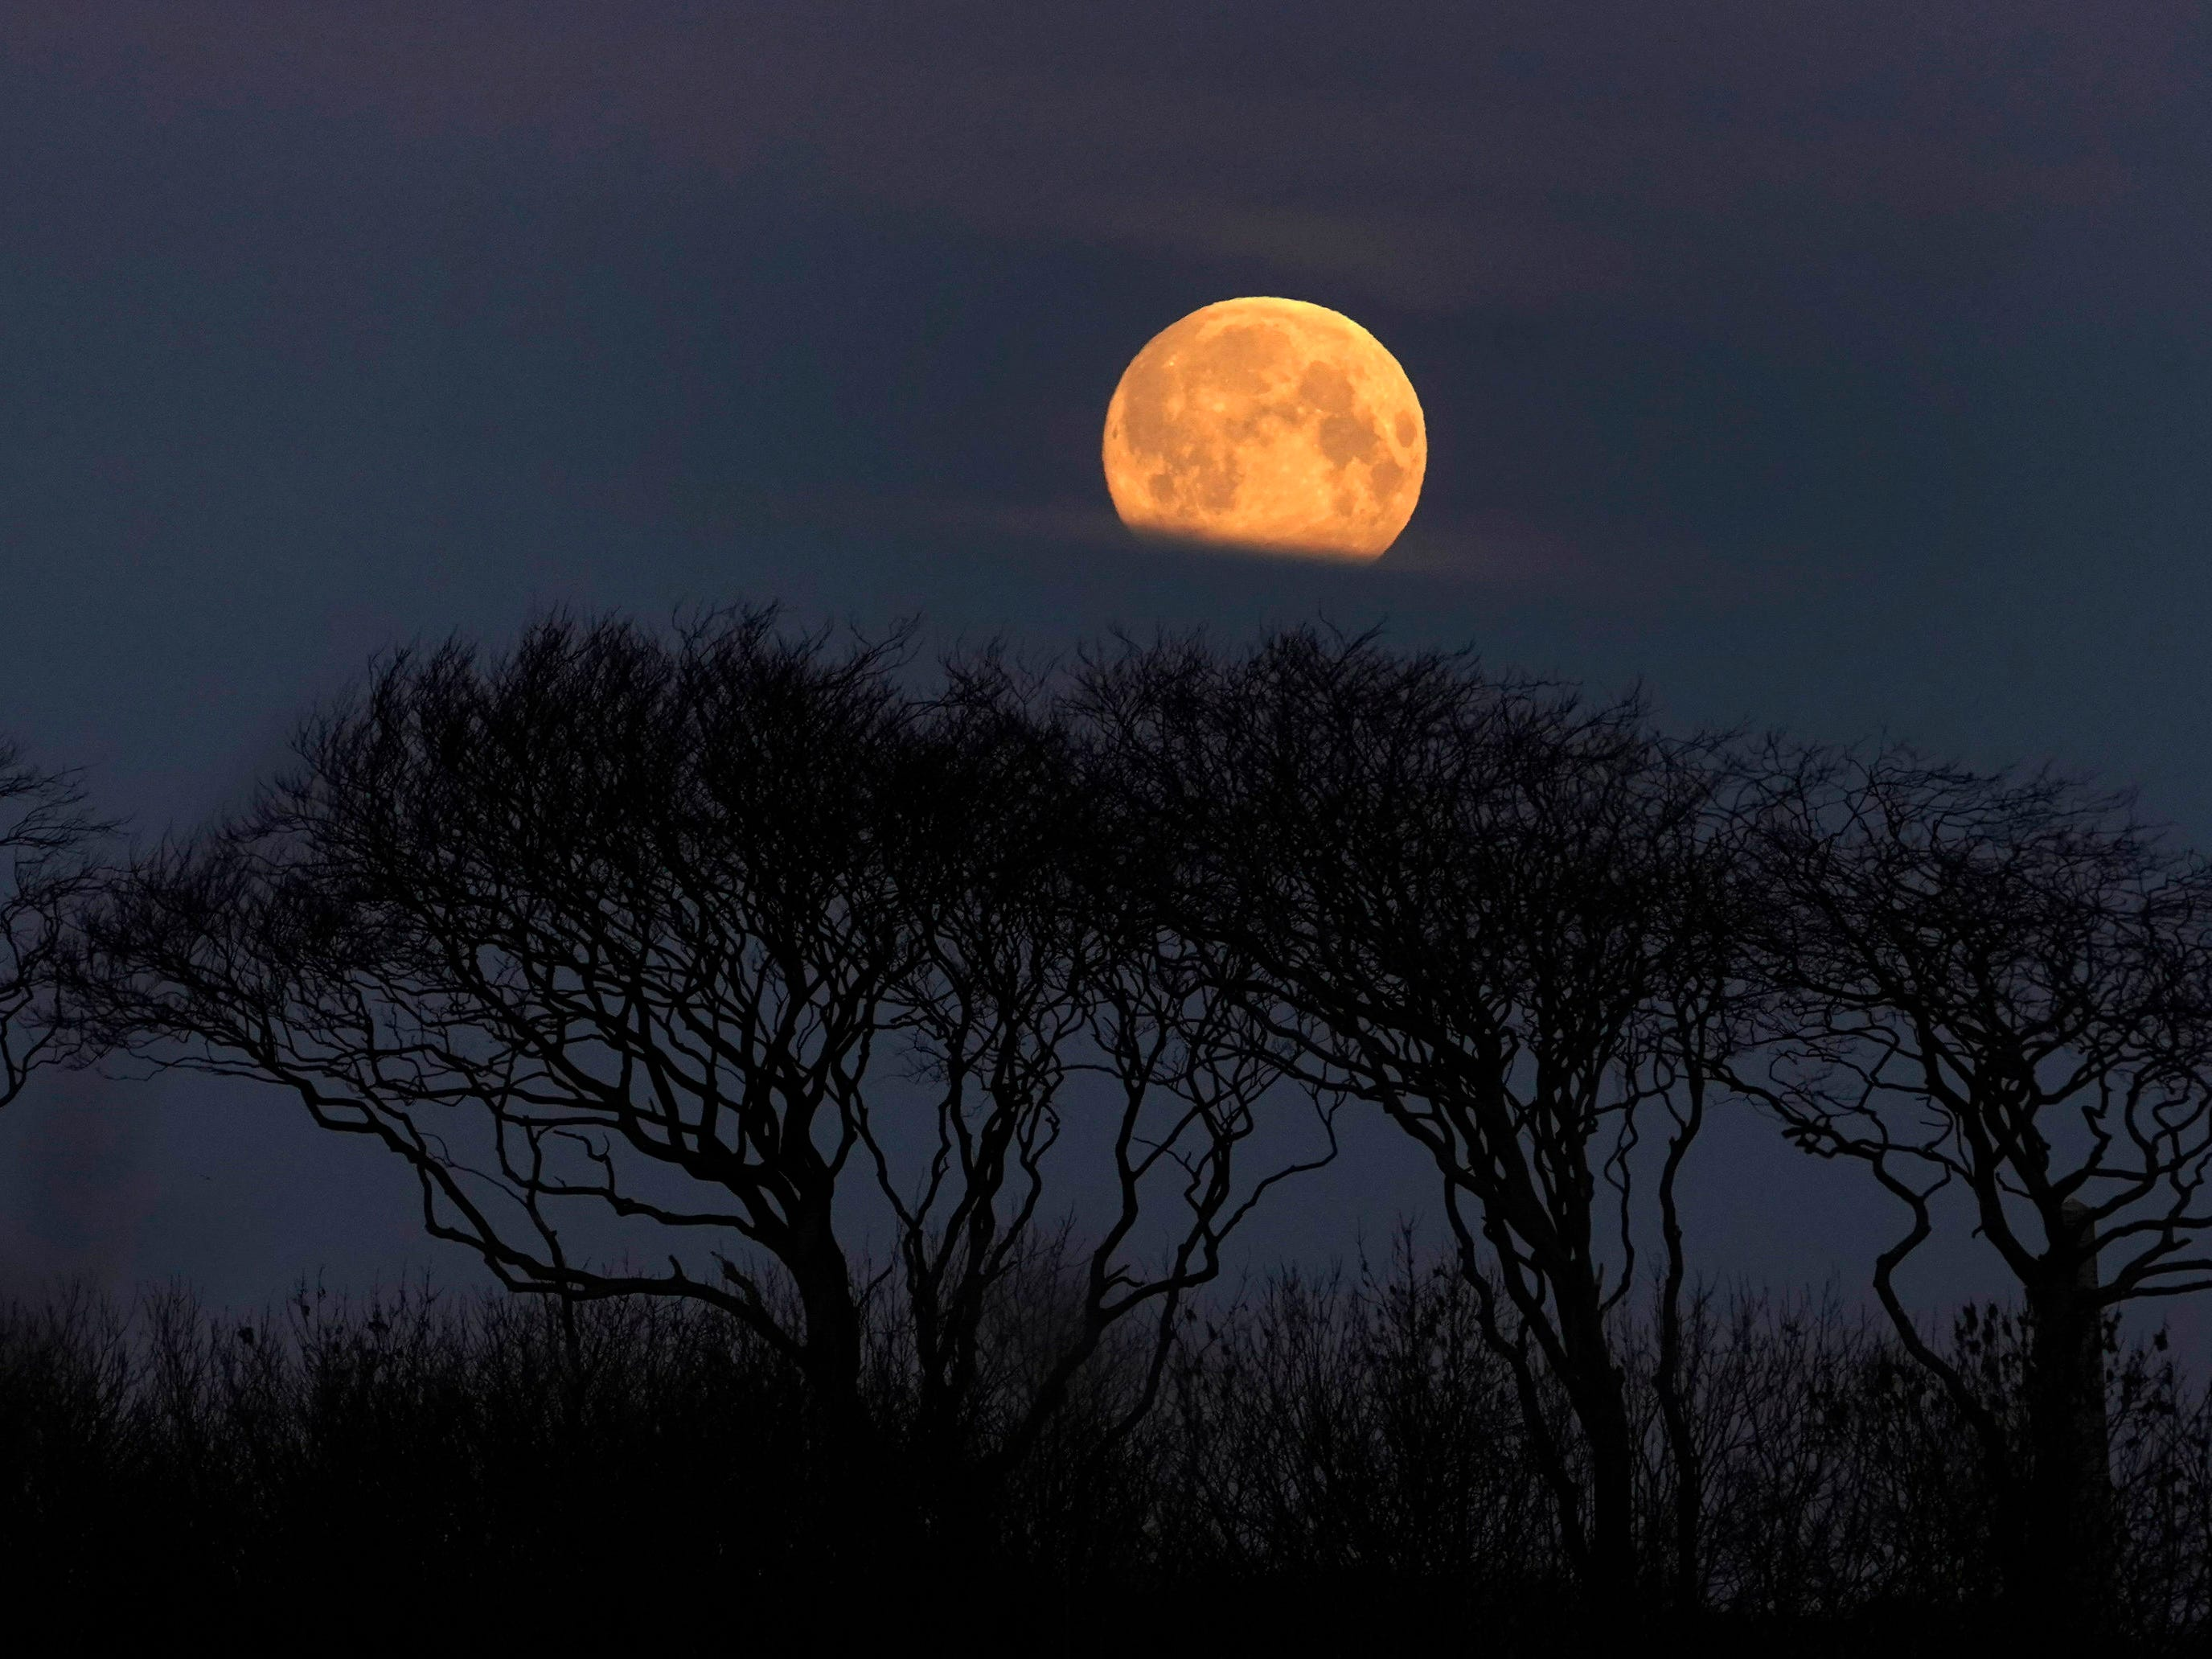 A supermoon sets as seen from Whitley Bay, England, as the sun begins to rise, early on Feb. 19, 2019.